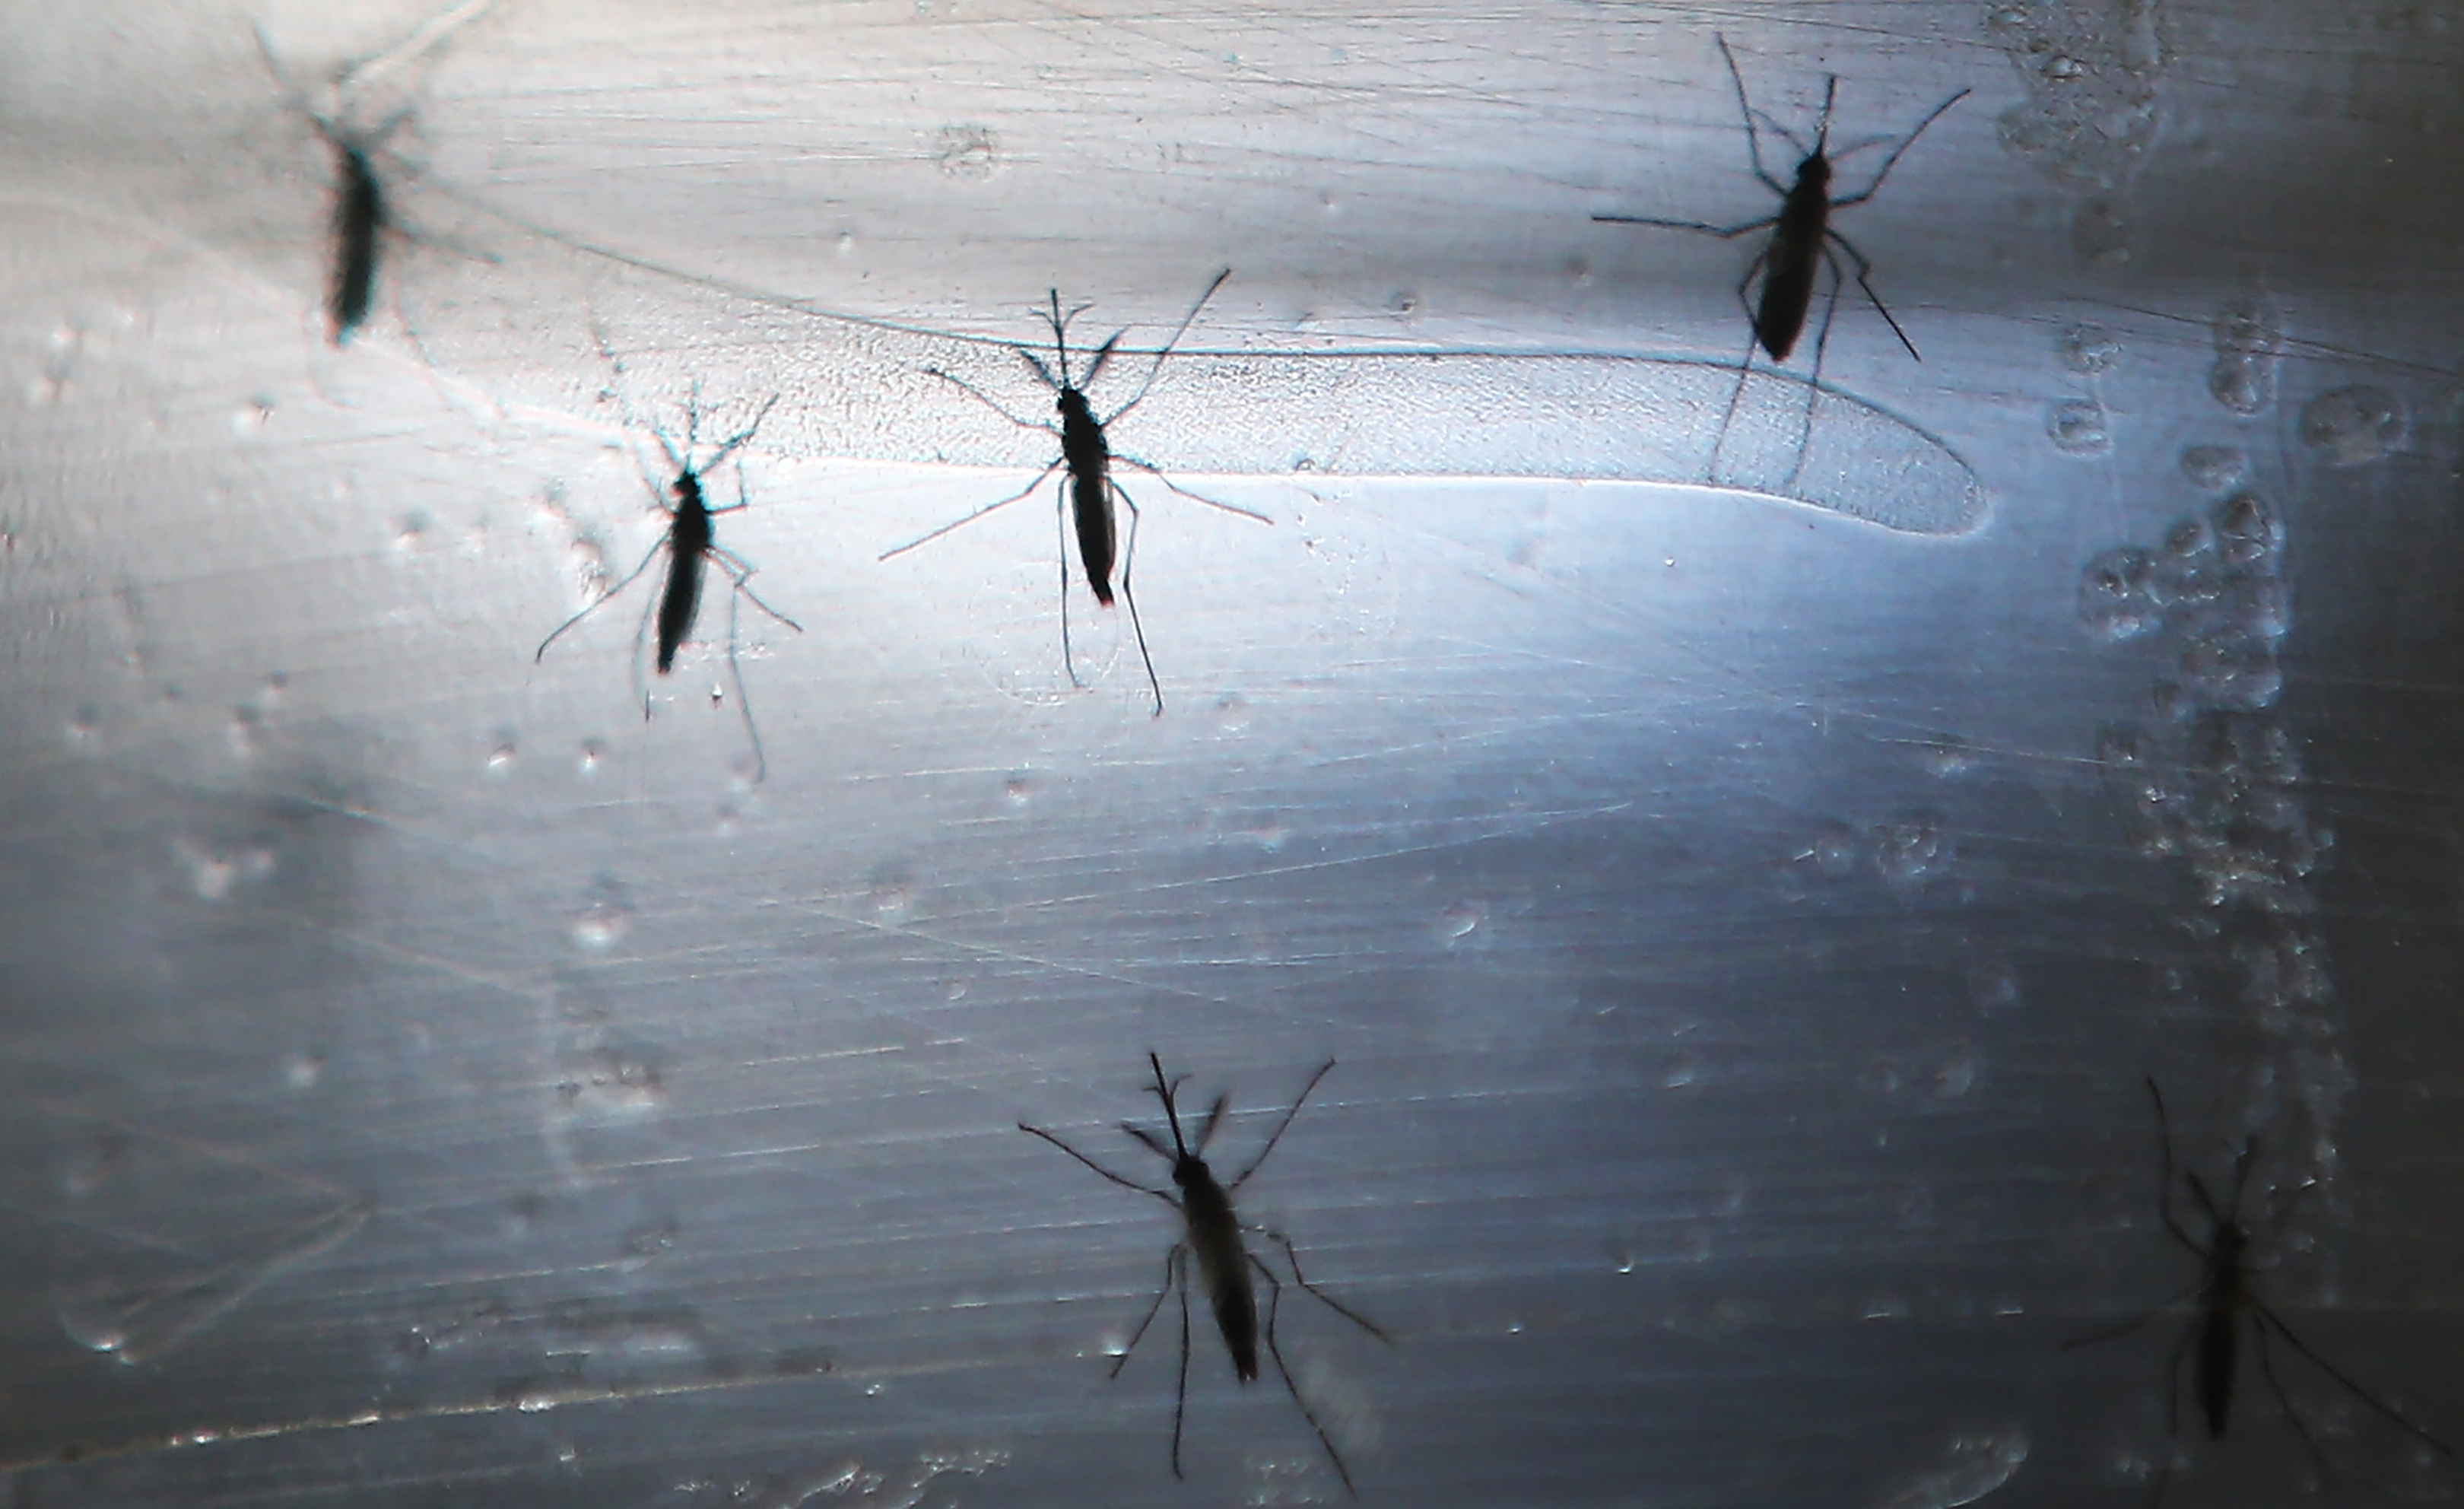 RECIFE, BRAZIL - JUNE 02: Aedes aegypti mosquitos are seen in a lab at the Fiocruz Institute on June 2, 2016 in Recife, Brazil. Microcephaly is a birth defect linked to the mosquito-borne Zika virus where infants are born with abnormally small heads. The Brazilian city of Recife and surrounding Pernambuco state remain the epicenter of the Zika virus outbreak, which has now spread to many countries in the Americas. A group of health experts recently called for the Rio 2016 Olympic Games to be postponed or cancelled due to the Zika threat but the WHO (World Health Organization) rejected the proposal.  (Photo by Mario Tama/Getty Images)